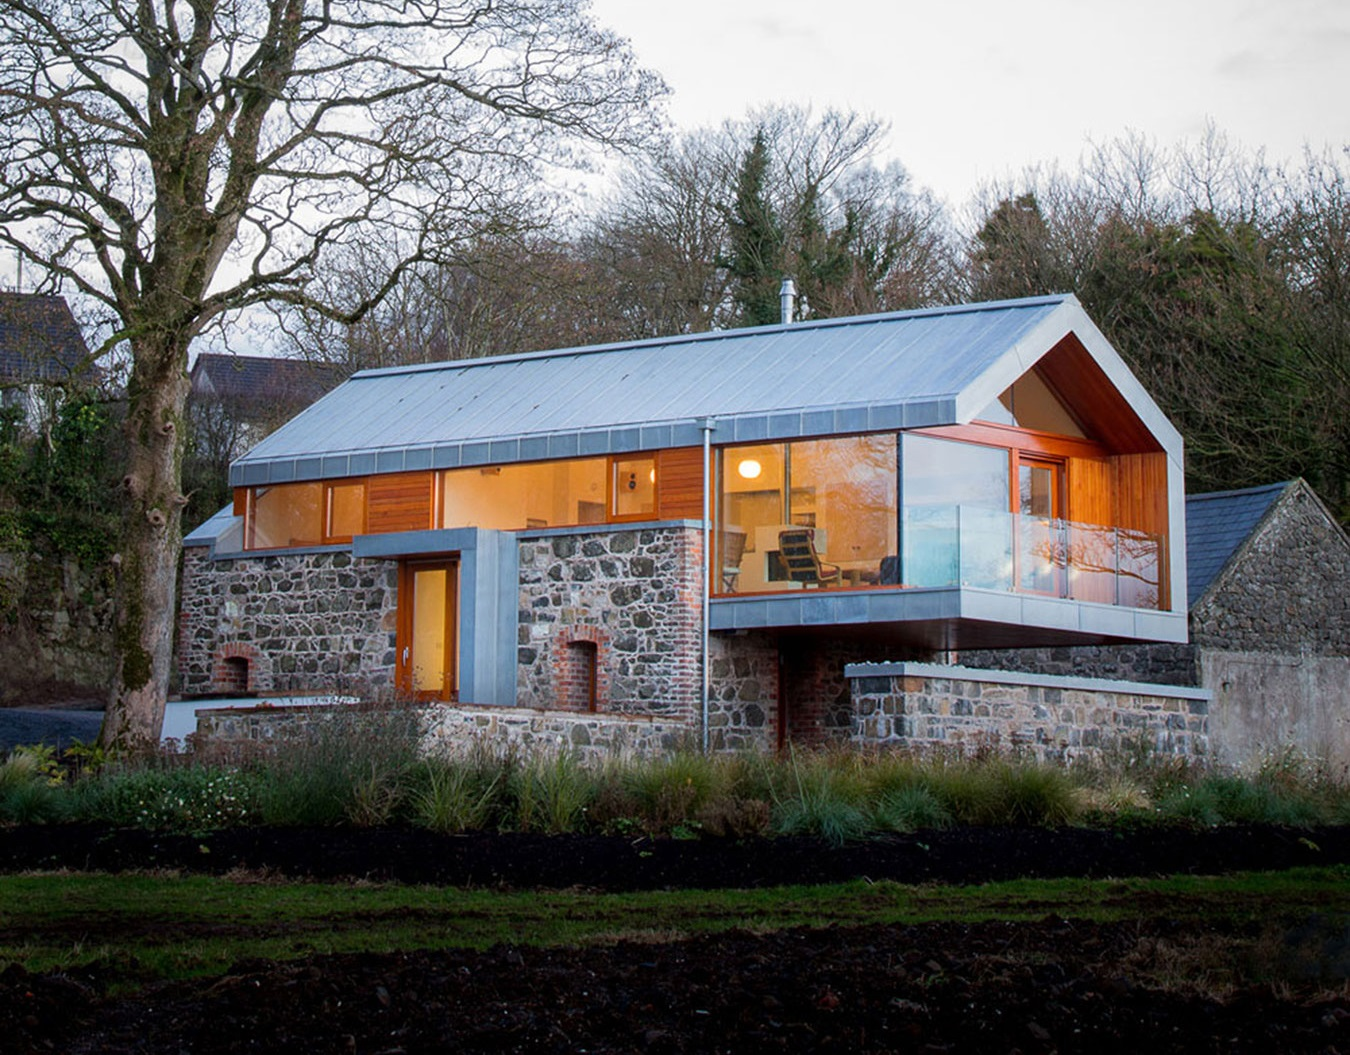 Stone Barn Wall Built into New Home